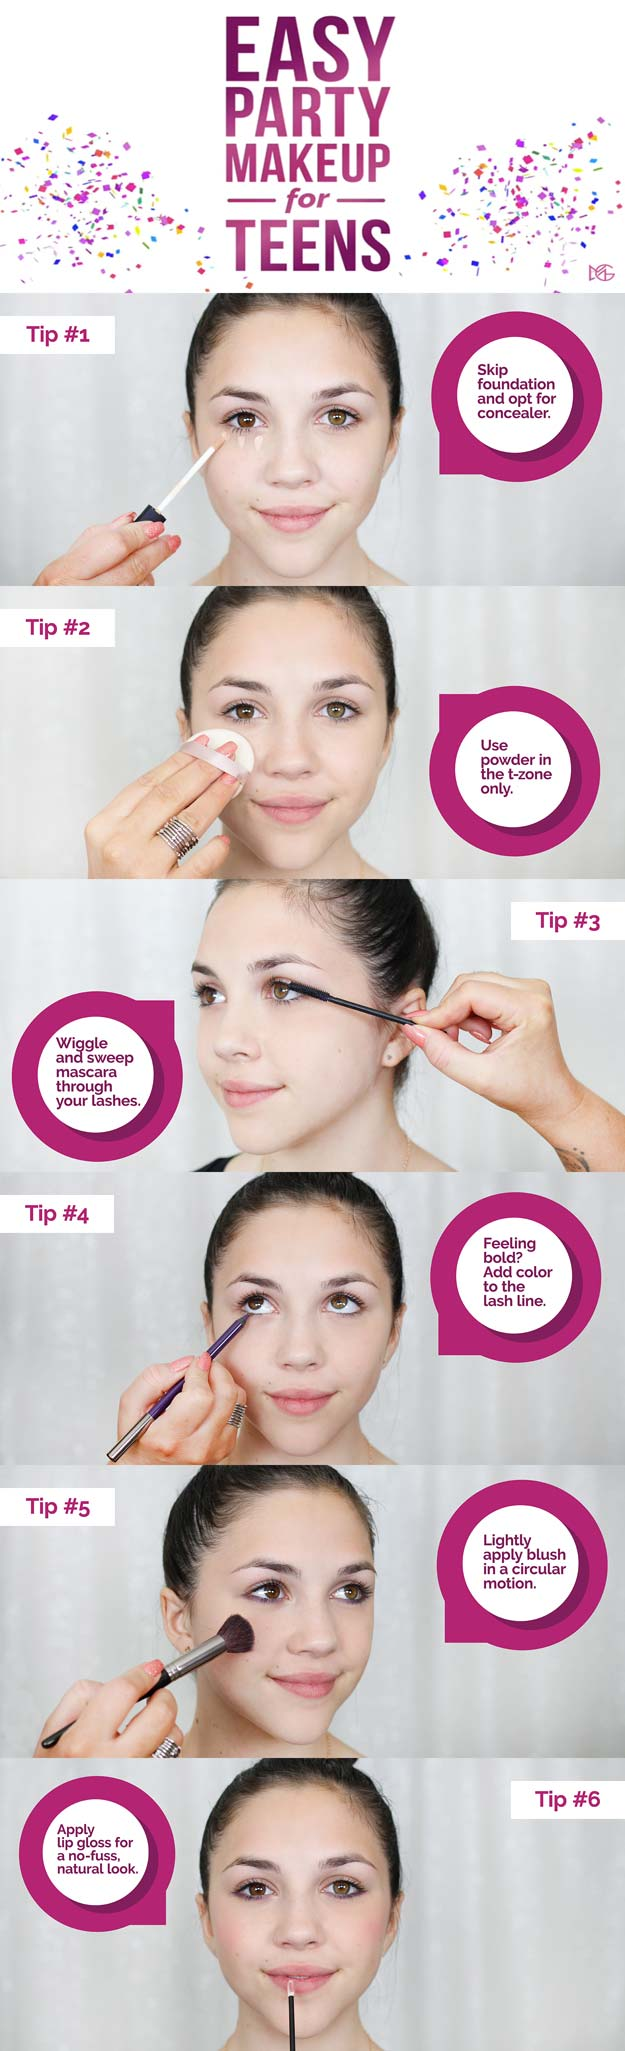 Best Makeup Tutorials for Teens -Easy Makeup Artist for Teens - Easy Makeup Ideas for